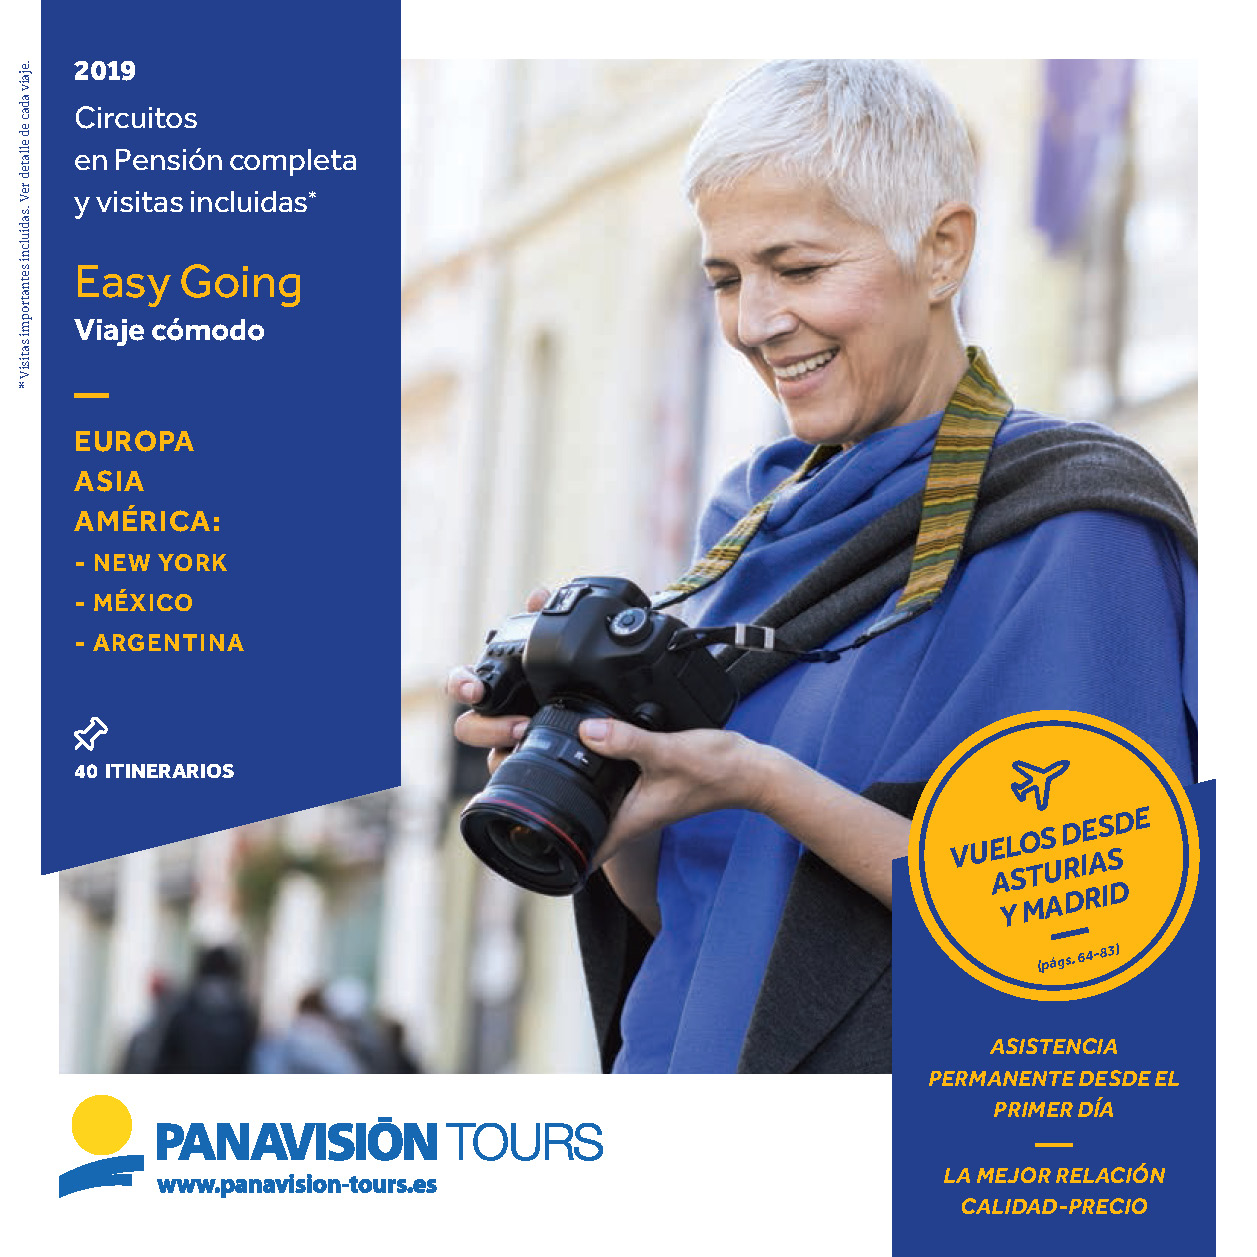 Catalogo Panavision Tours Easy Going 2019 salidas Madrid y Asturias ES9